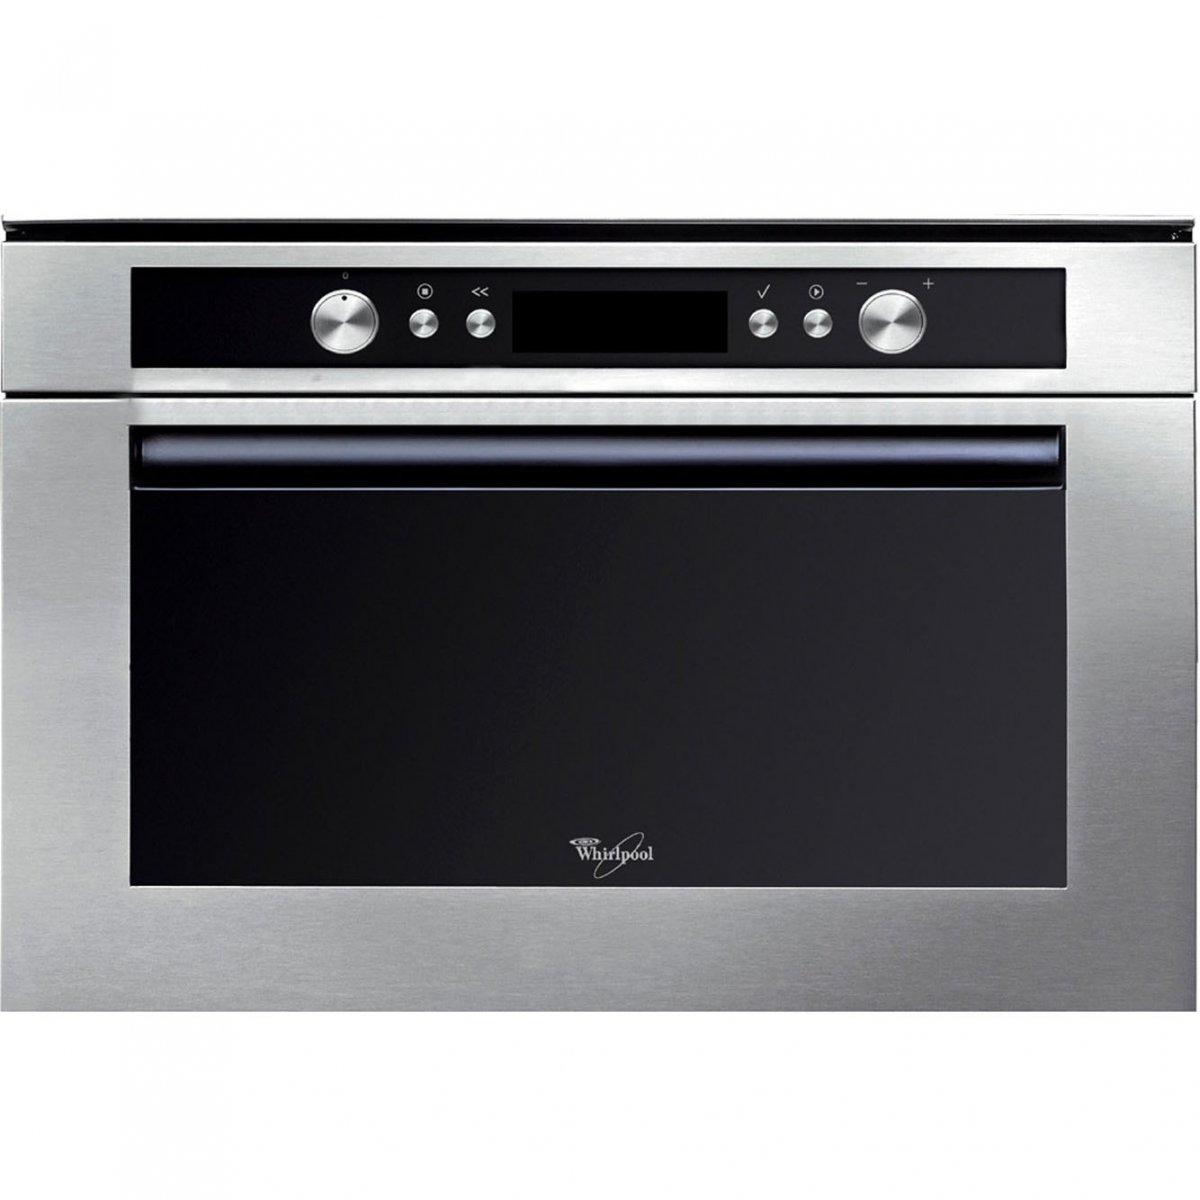 Whirlpool forno vapore amw597ixl whirlpool - Forno ad incasso whirlpool ...